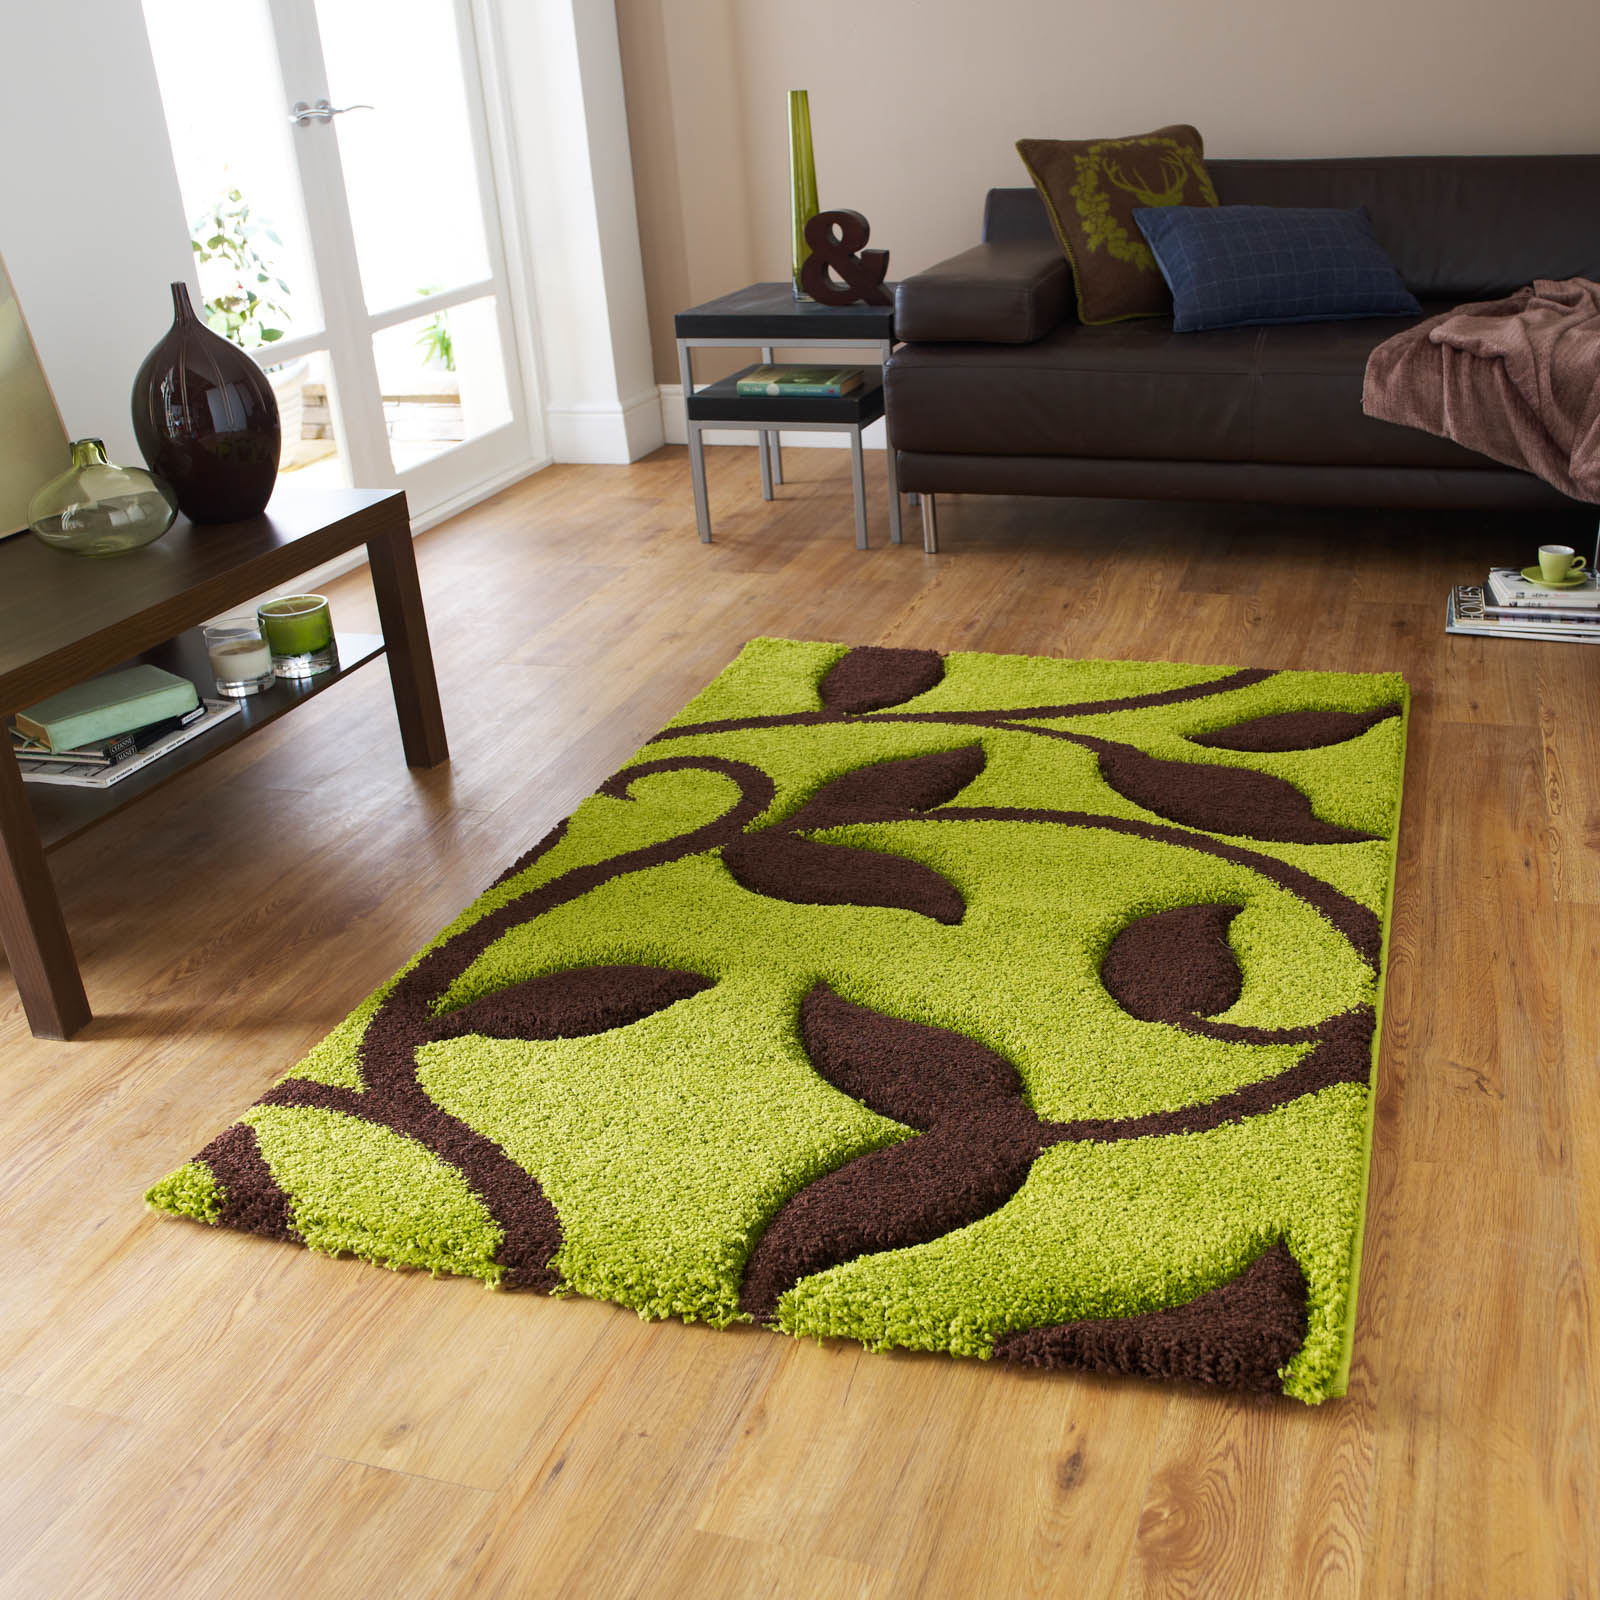 Fashion Carving 7647 Rugs in Green Brown